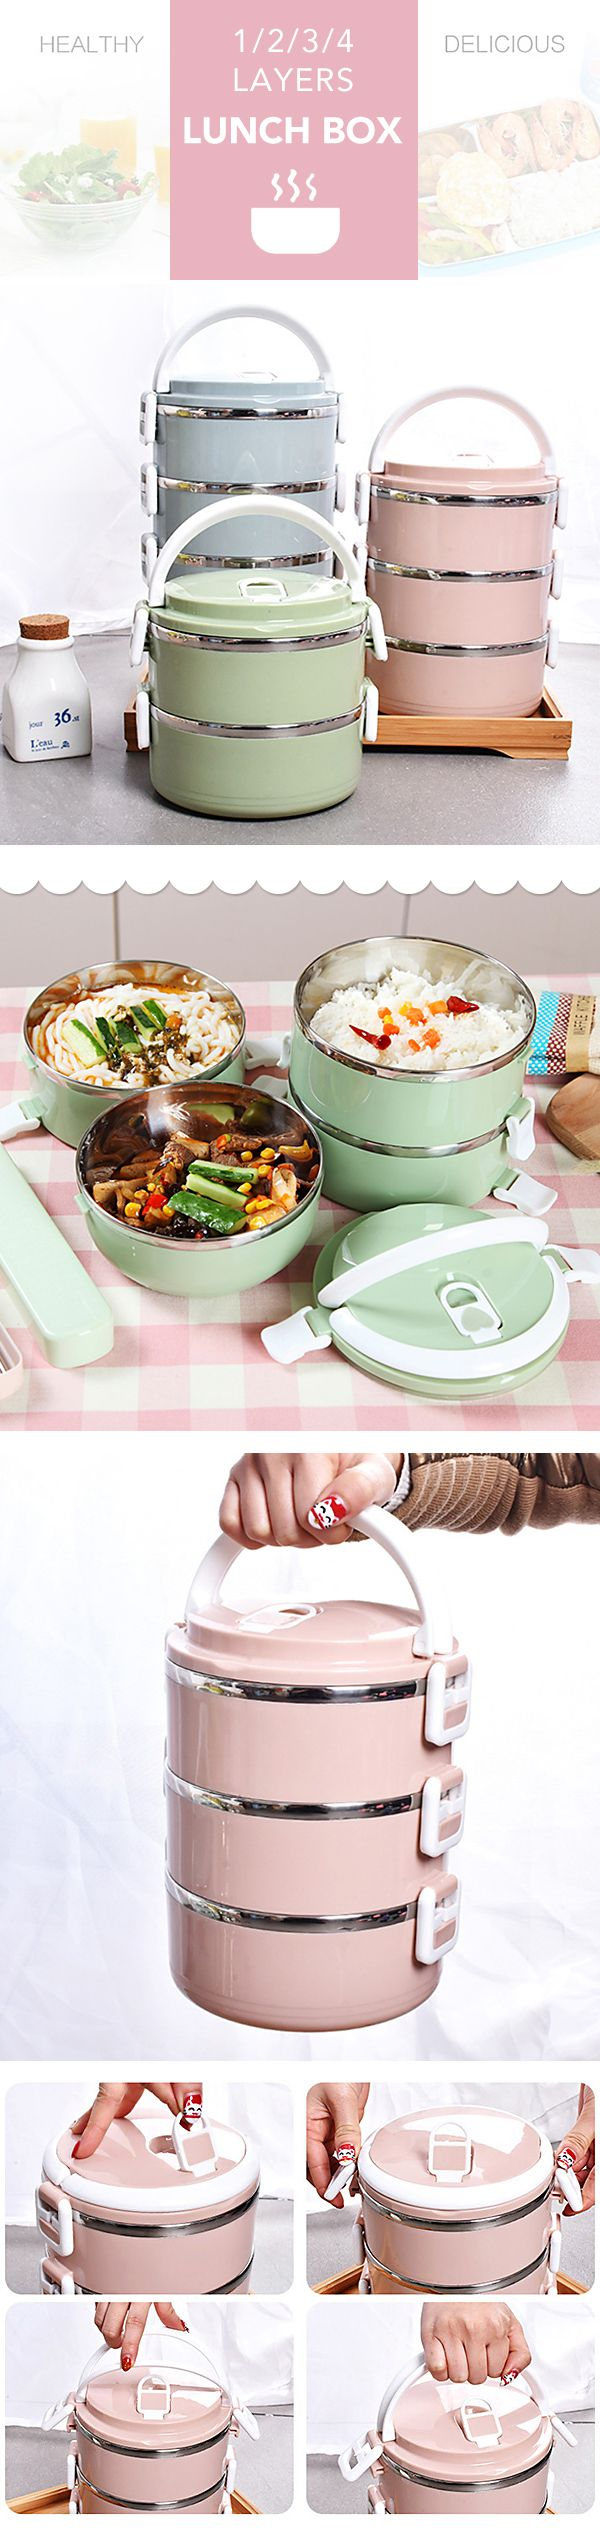 $6.95 1/2/3/4 Layers Stainless Steel Thermal Insulated Lunch Box Bento Food Storage Container Maccaron